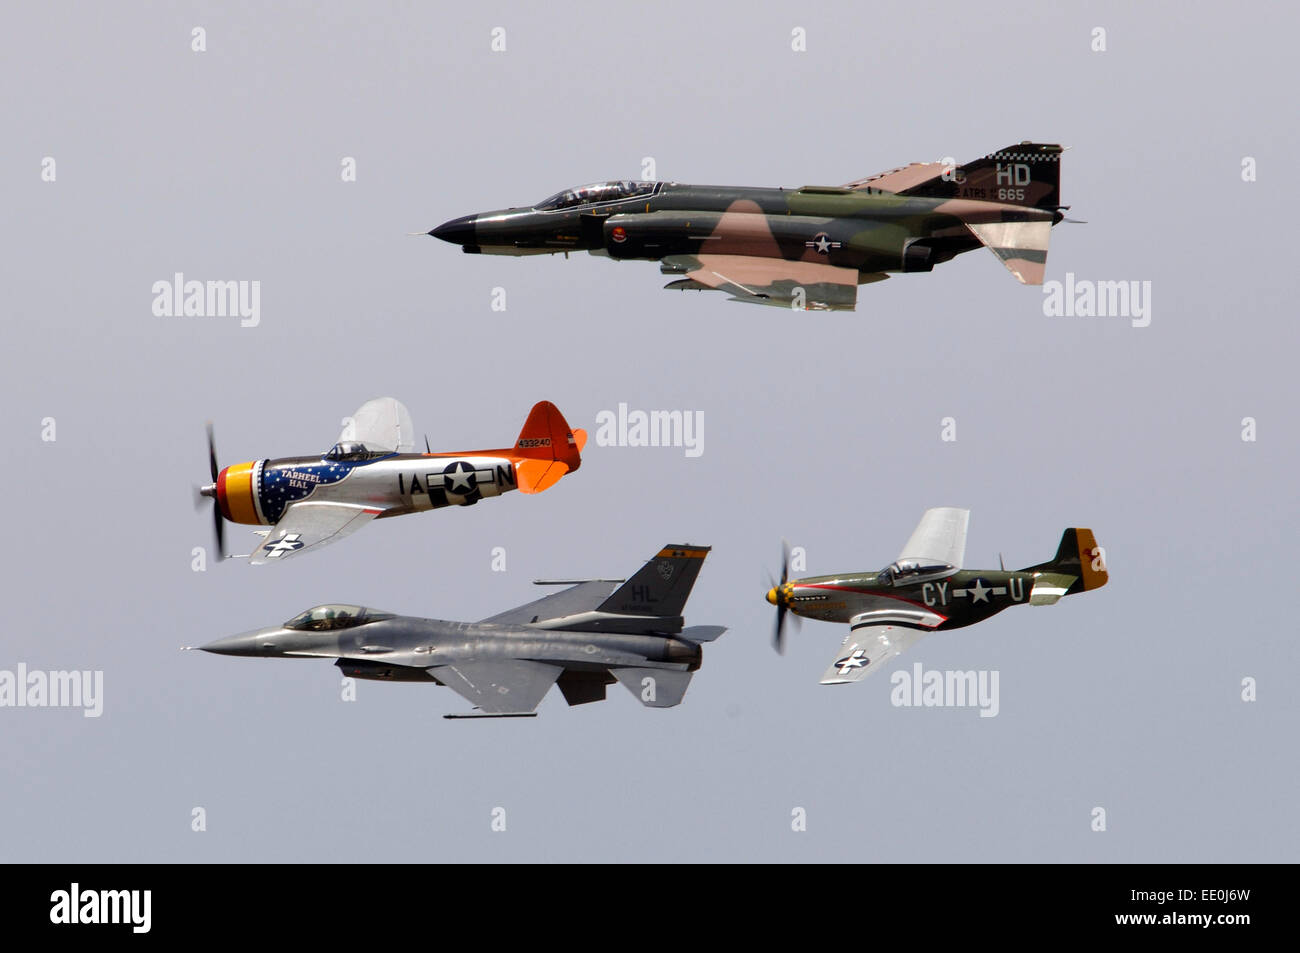 An F-4 Phantom, P-47 Thunderbolt, F-16 Fighting Falcon and P-51 Mustang fly in a heritage flight formation during - Stock Image